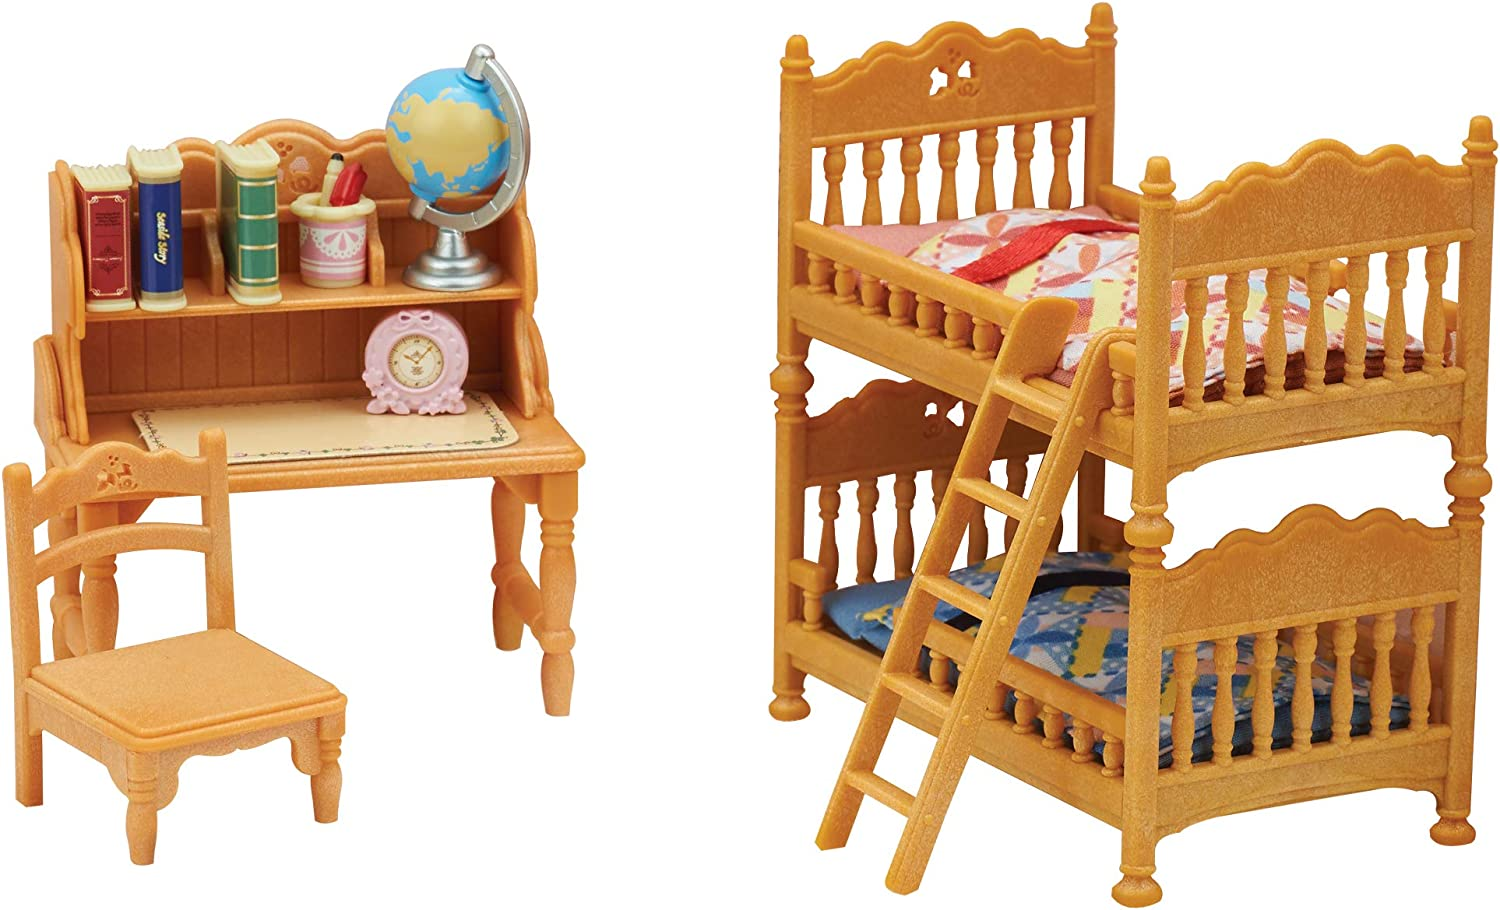 Top 15 Best Calico Critters (2020 Reviews & Buying Guide) 13